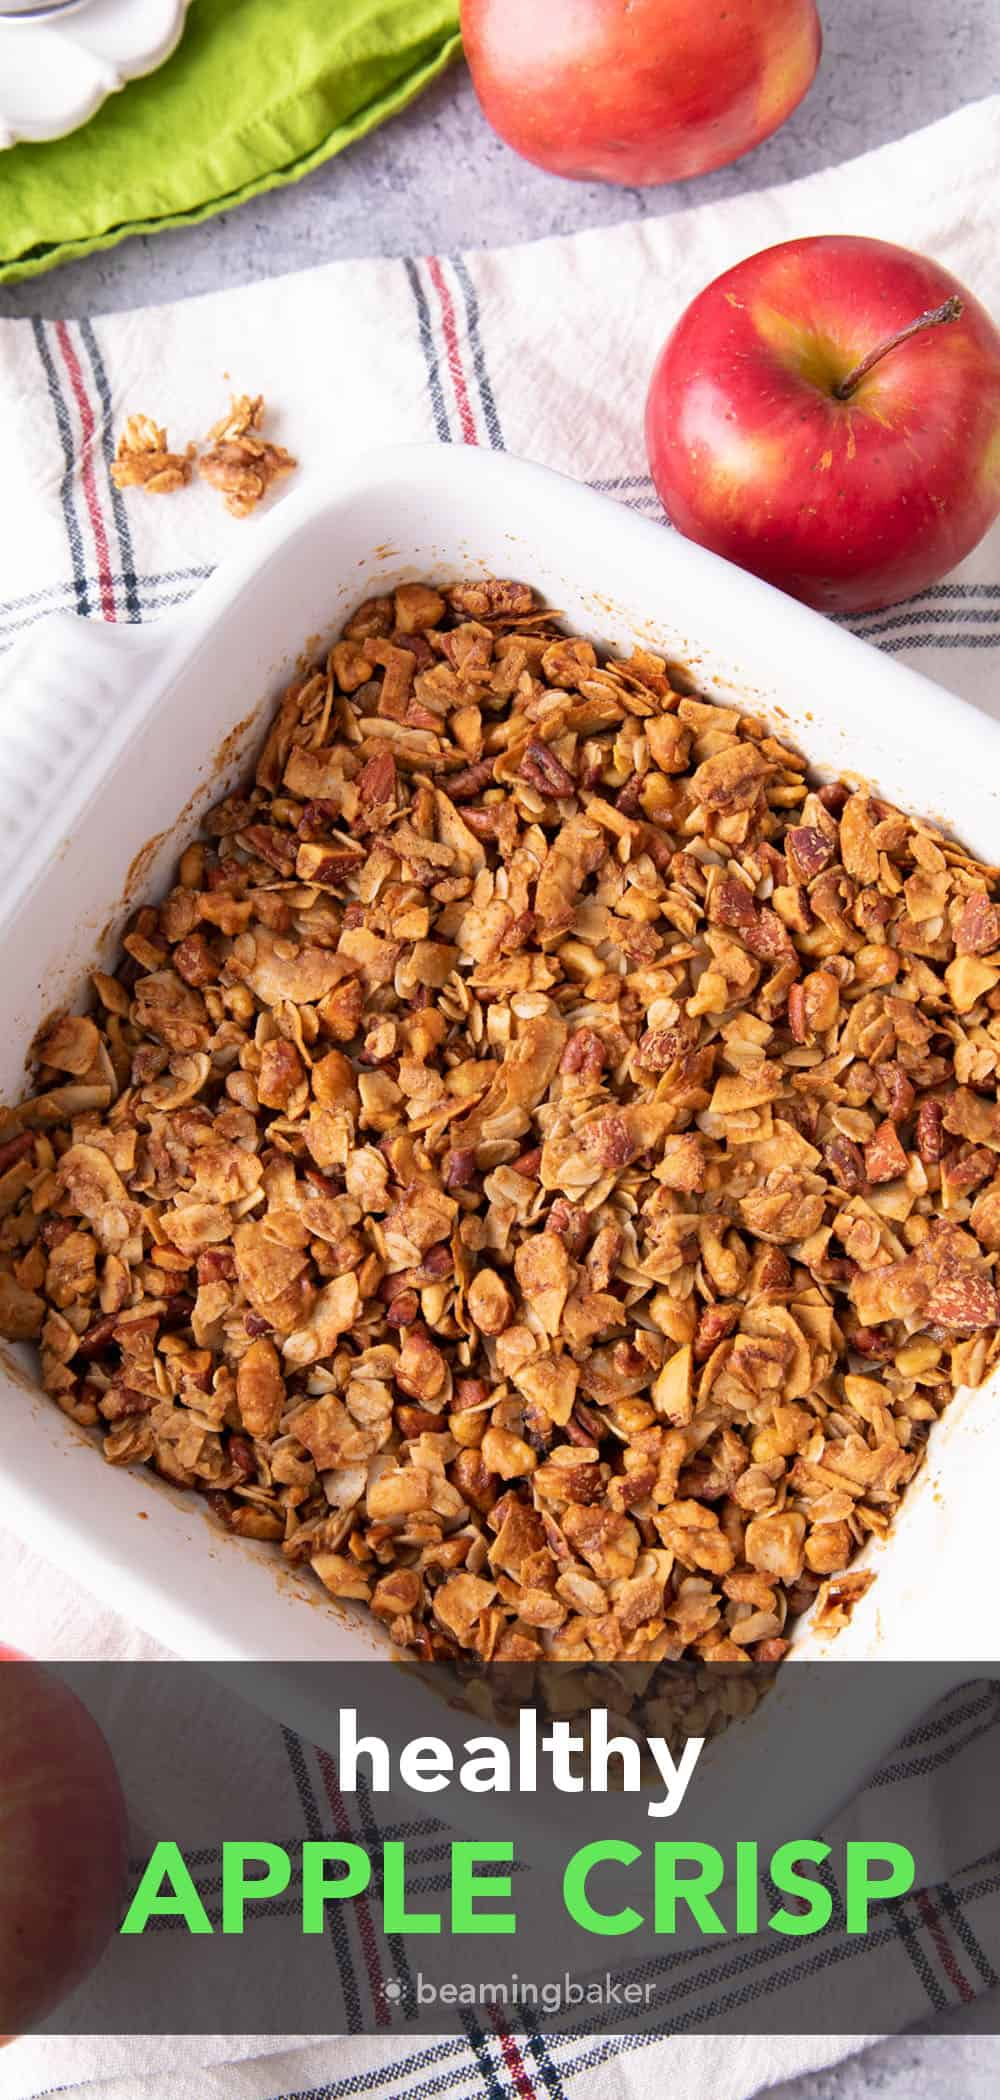 Healthy Apple Crisp: this healthy easy apple crisp recipe yields delicious crisp topping and warm apple filling for a guilt-free dessert made with healthy ingredients! #Healthy #Apple #Crisp | Recipe at BeamingBaker.com